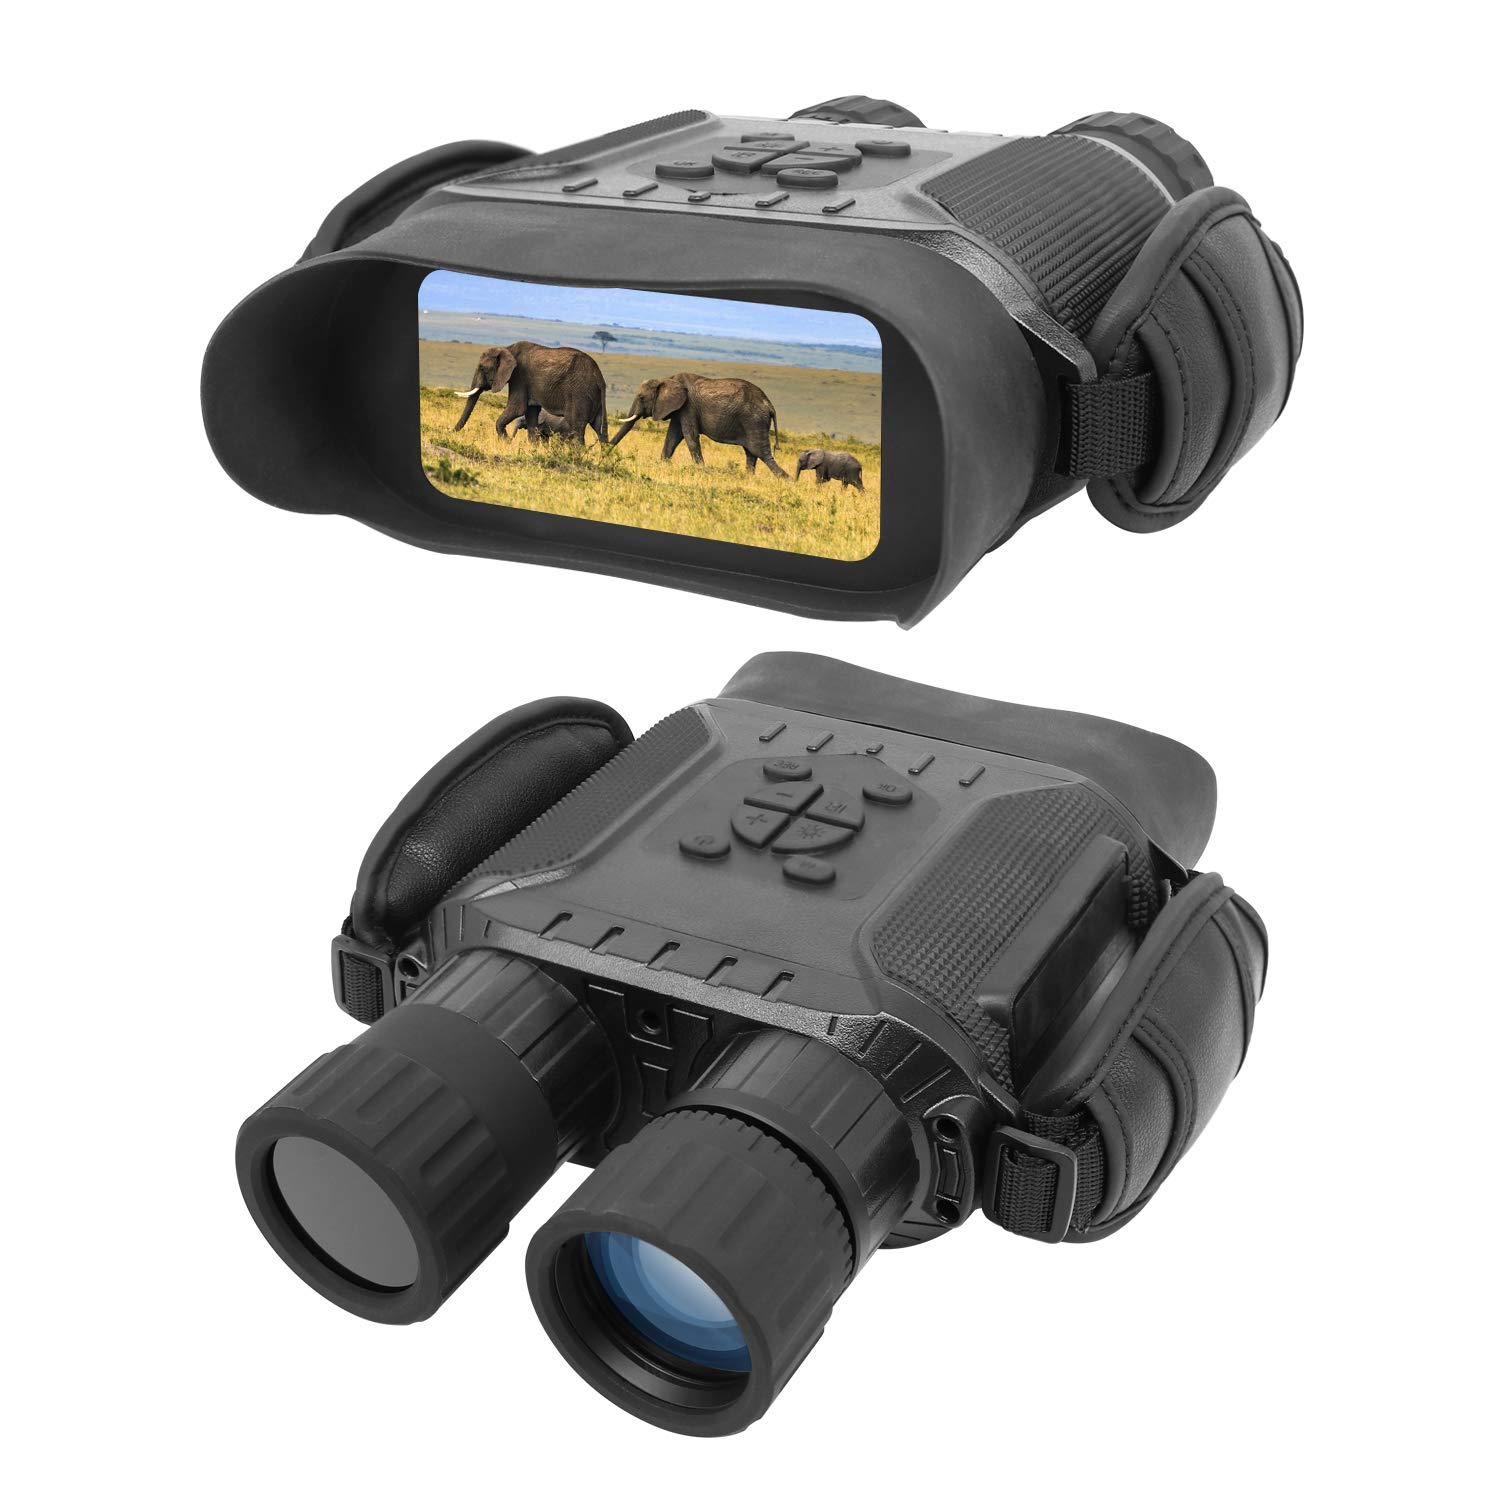 Bestguarder NV-900 4.5X40mm Digital Night Vision Binocular with Time Lapse Function Takes HD Image 720p Video with 4 LCD Widescreen from 400m 1300ft in The Dark W 32G Memory Card